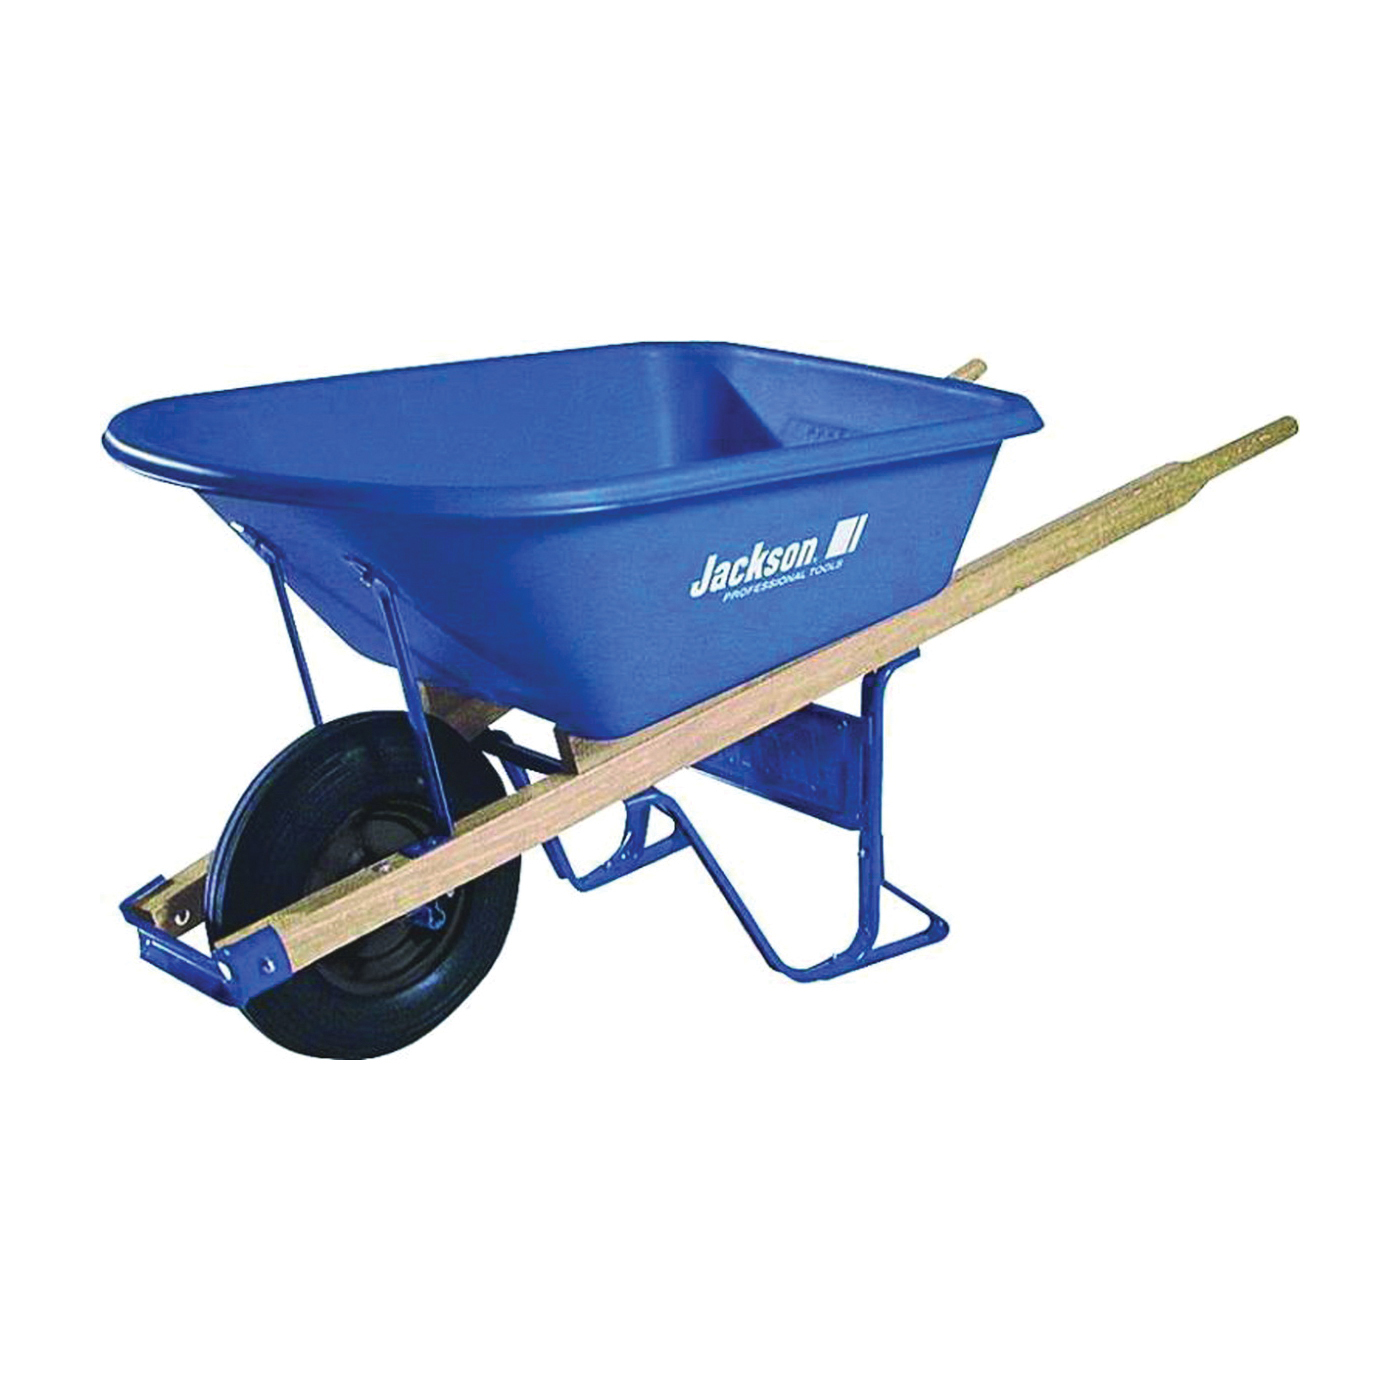 Picture of JACKSON MP57514 Contractor Wheelbarrow, 5-3/4 cu-ft Volume, Poly, 1 -Wheel